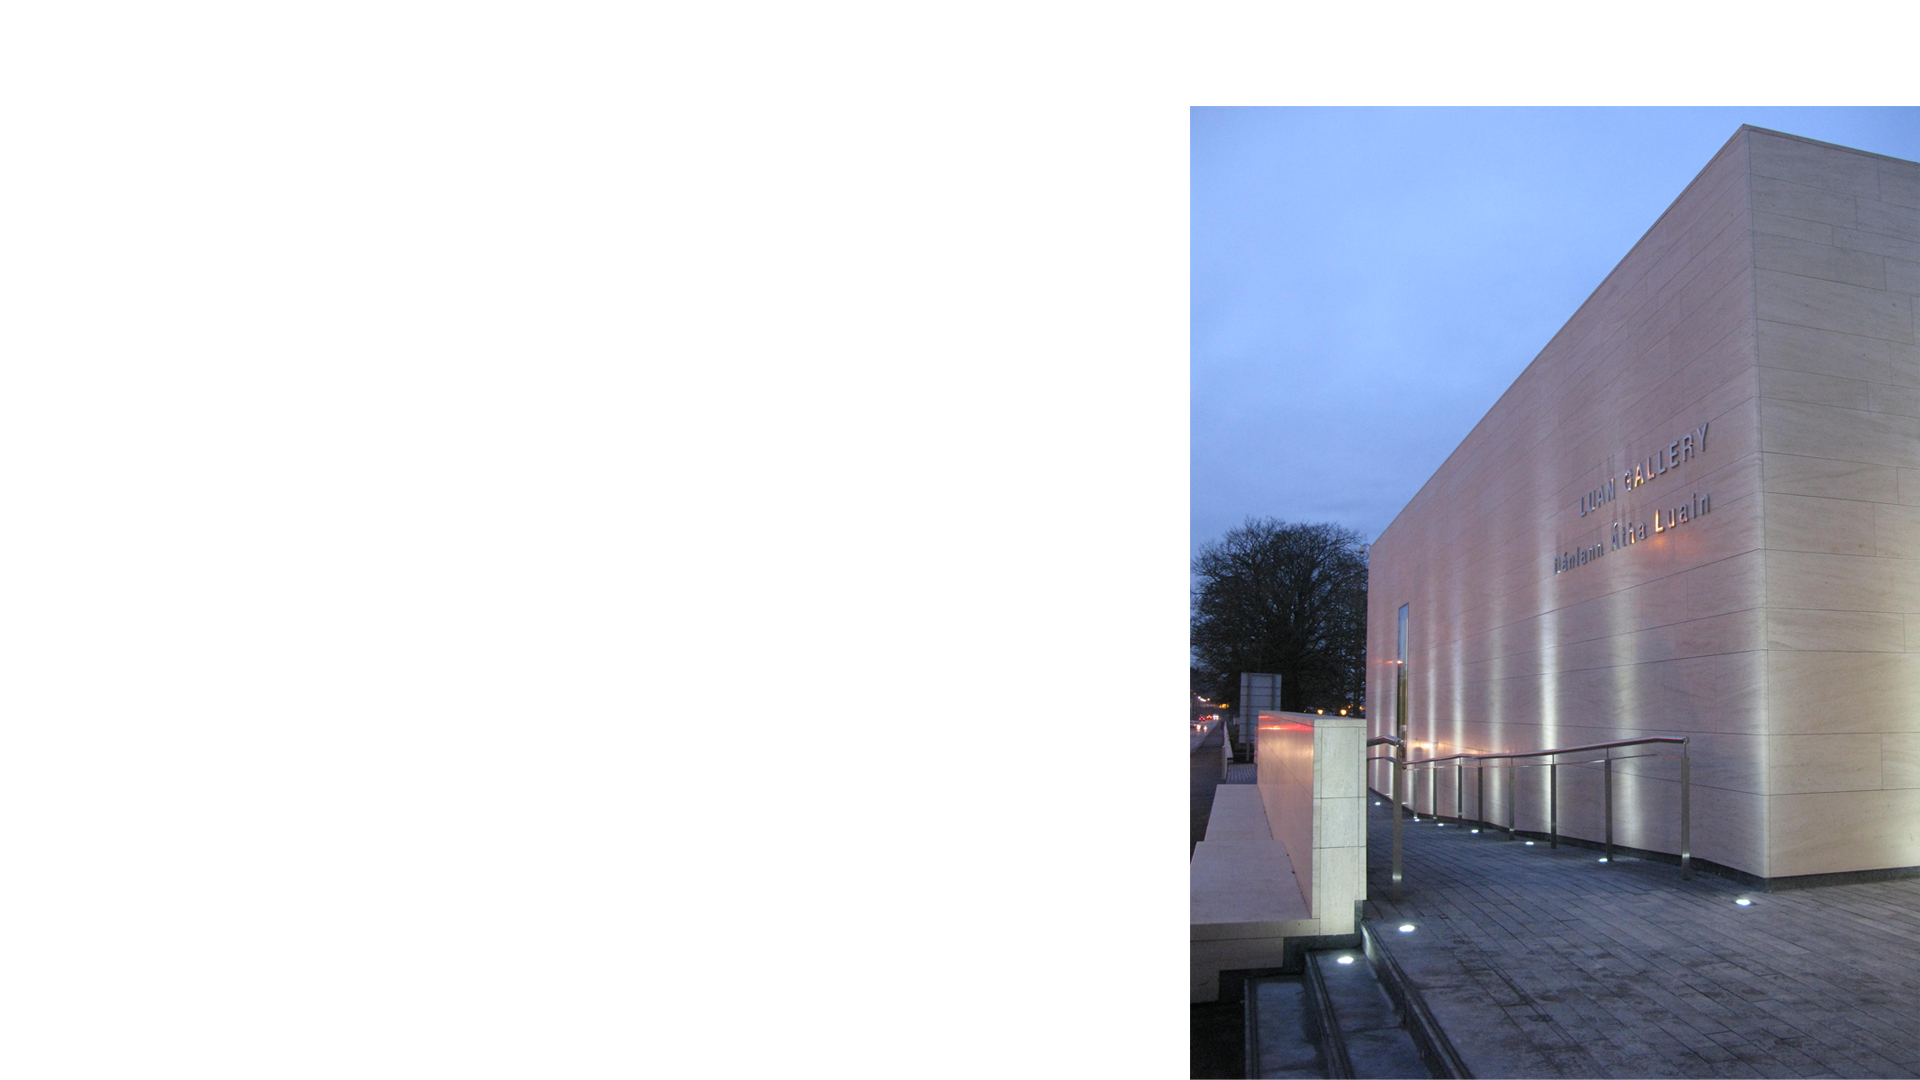 Detail of the stone facade and entrance ramp at dusk on the new wing at the Luan Gallery